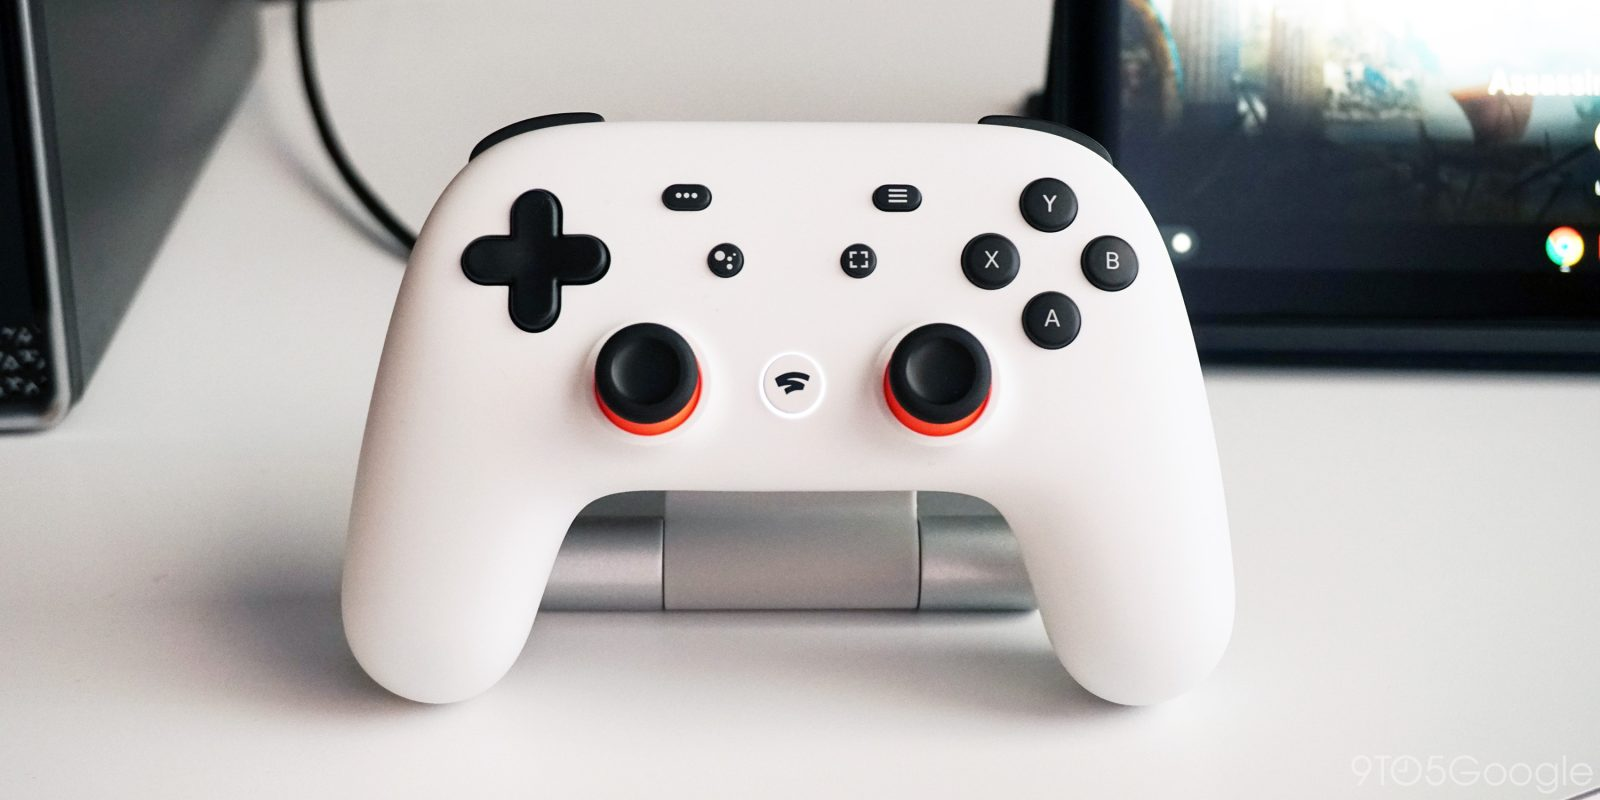 Stadia Controller proves difficult to open in first teardown, battery revealed